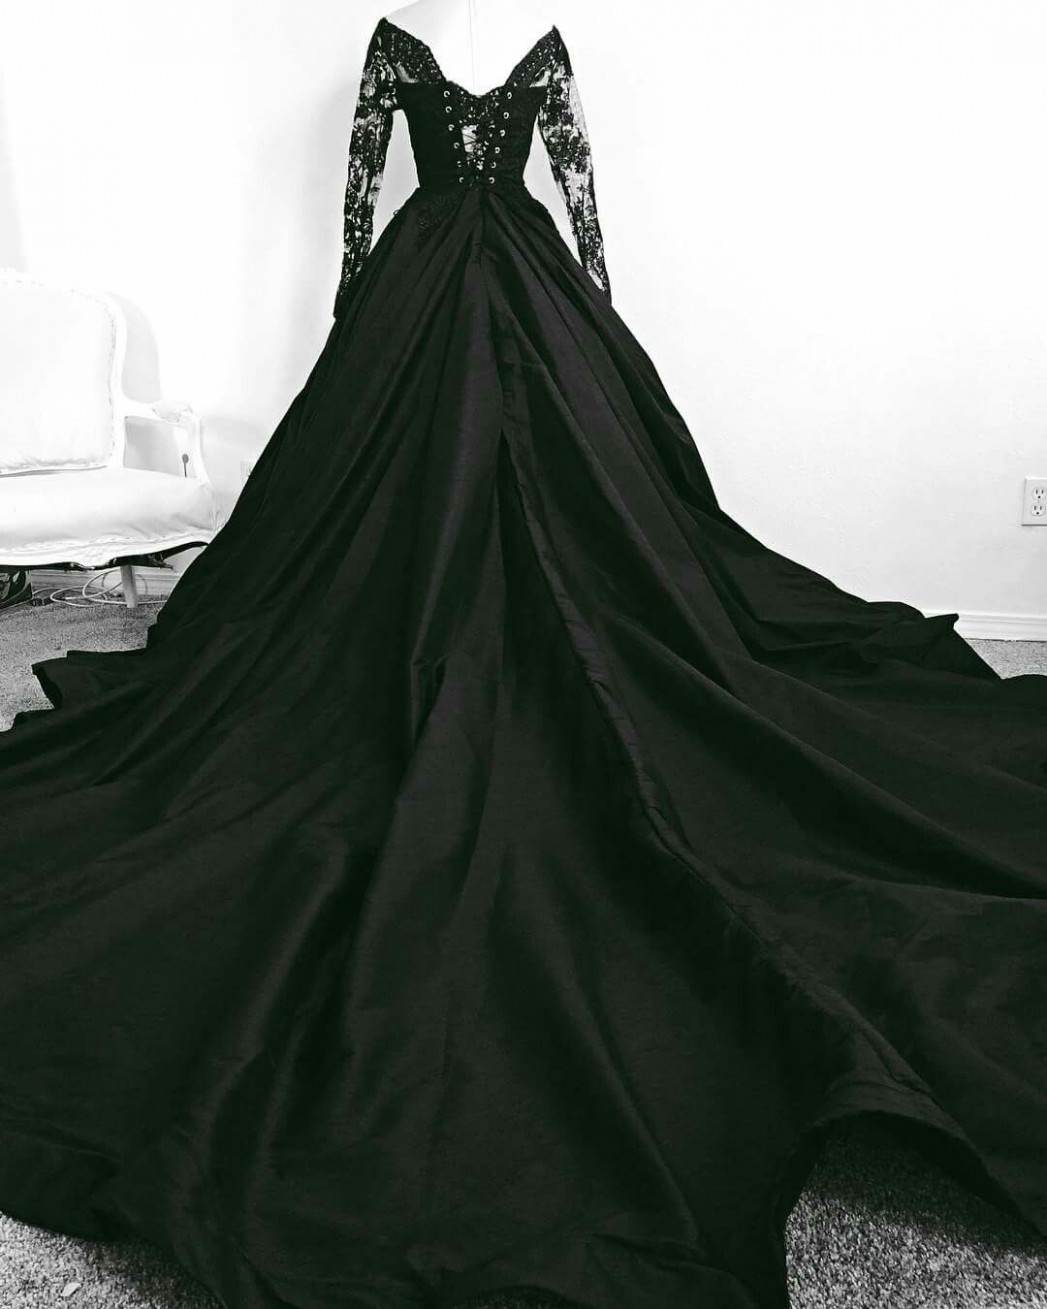 black #dress #wedding black wedding dress black wedding dress schwarzes kleid hochzeit